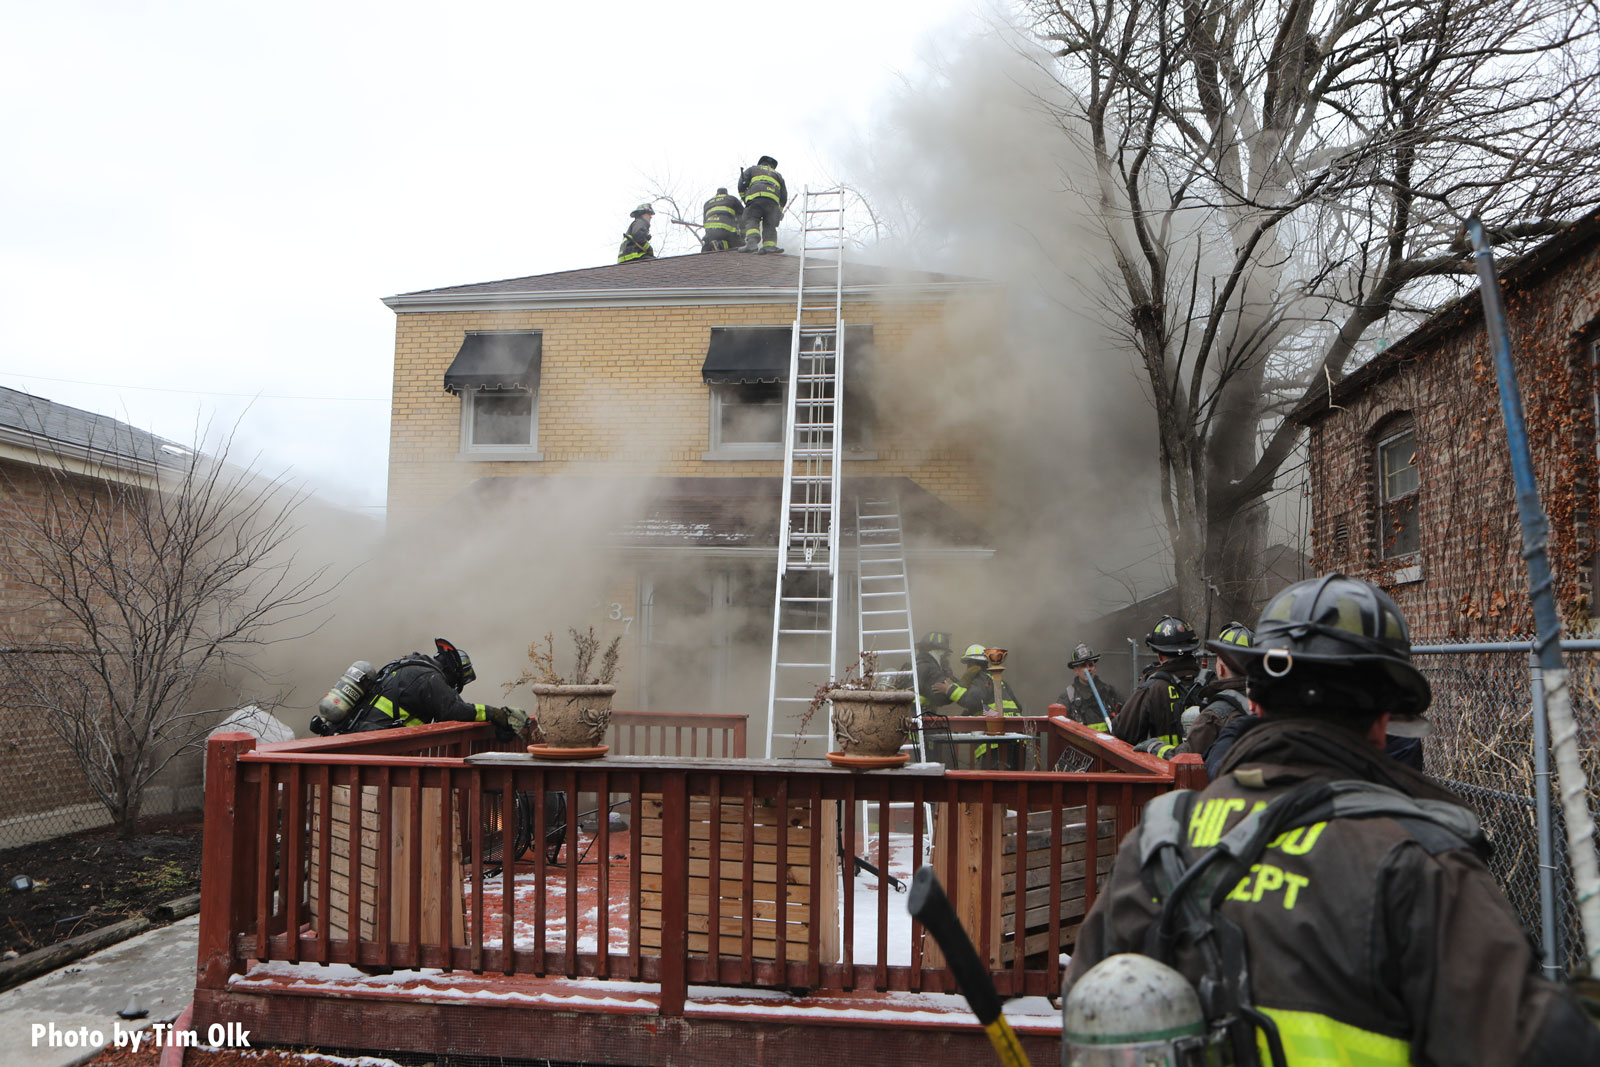 Firefighters work on the roof during the fire